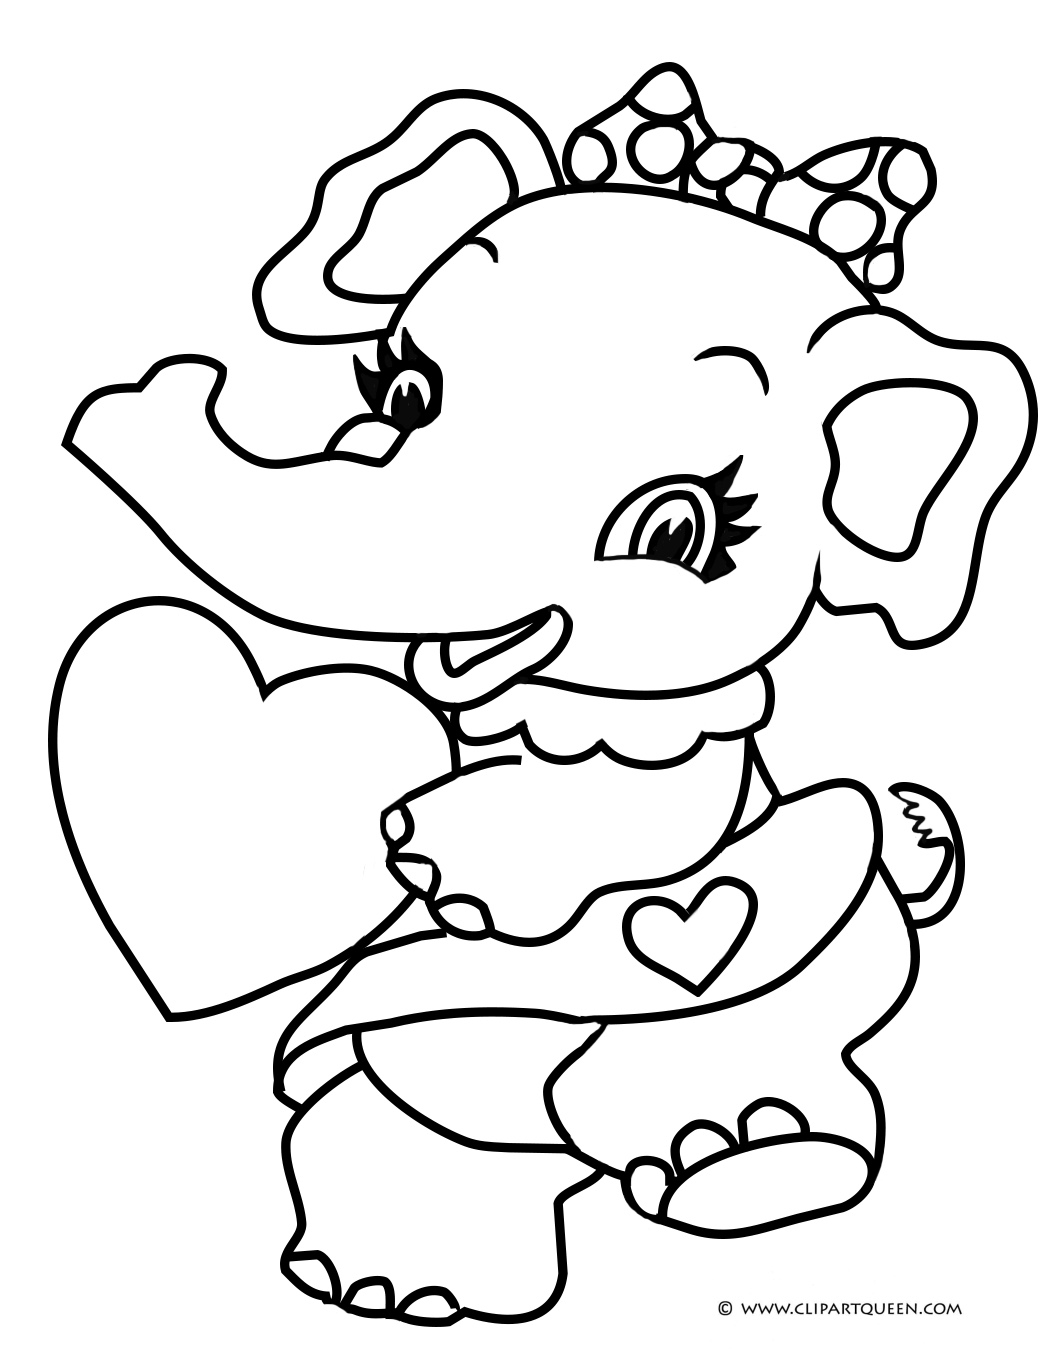 cute and funny valentines day coloring page - Valentine Coloring Sheet